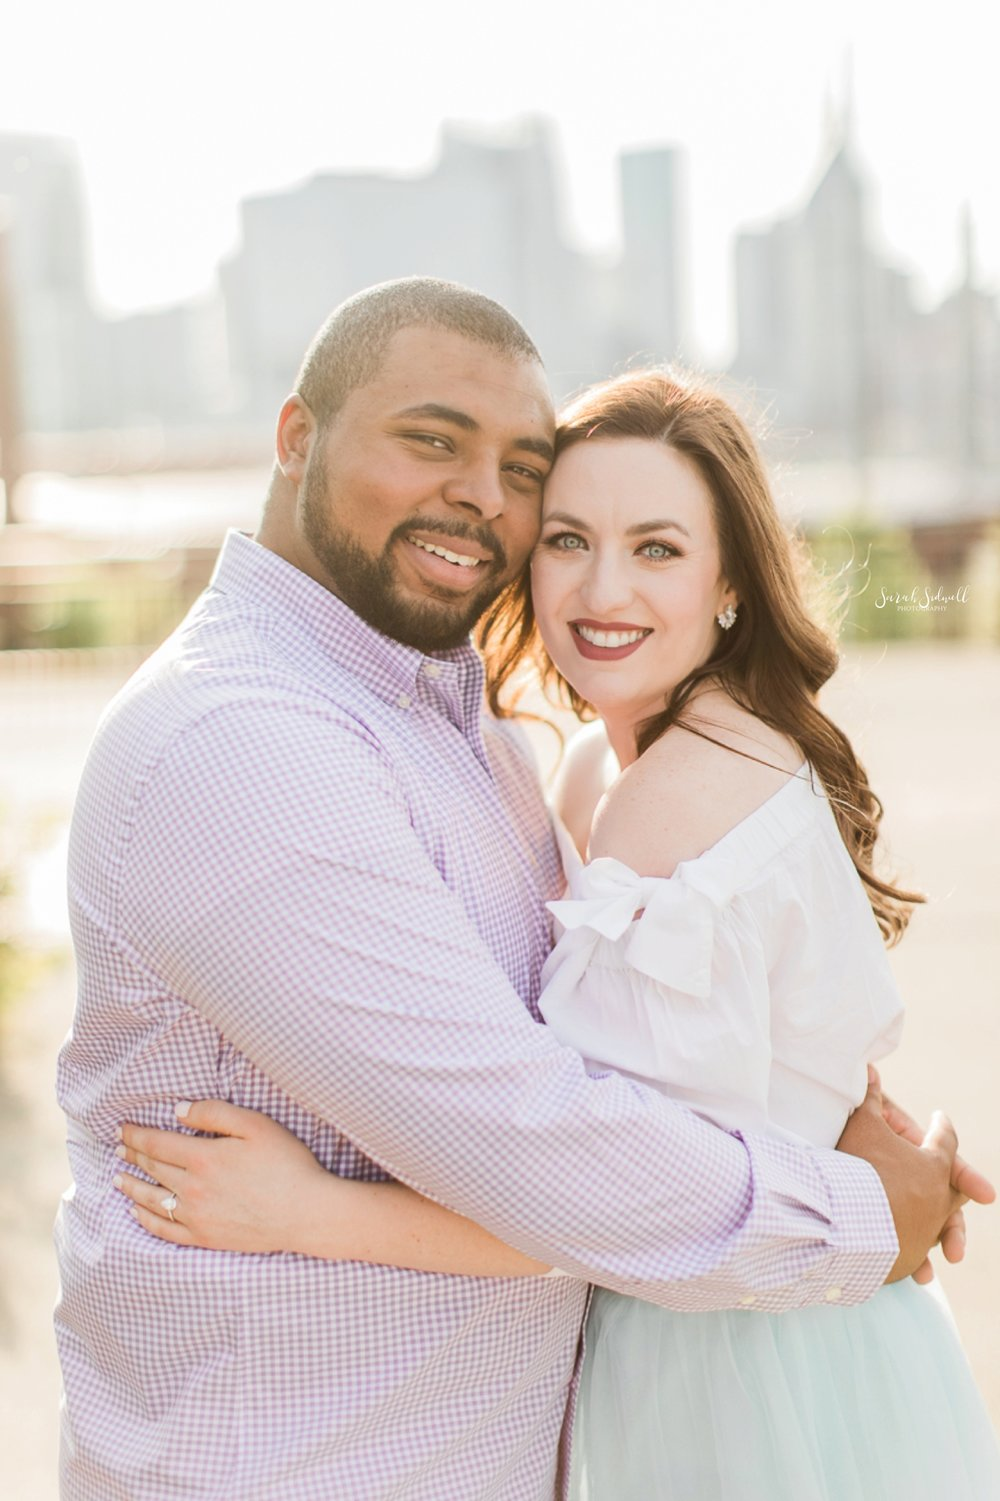 A couple embrace each other during their Engagement Photography session.